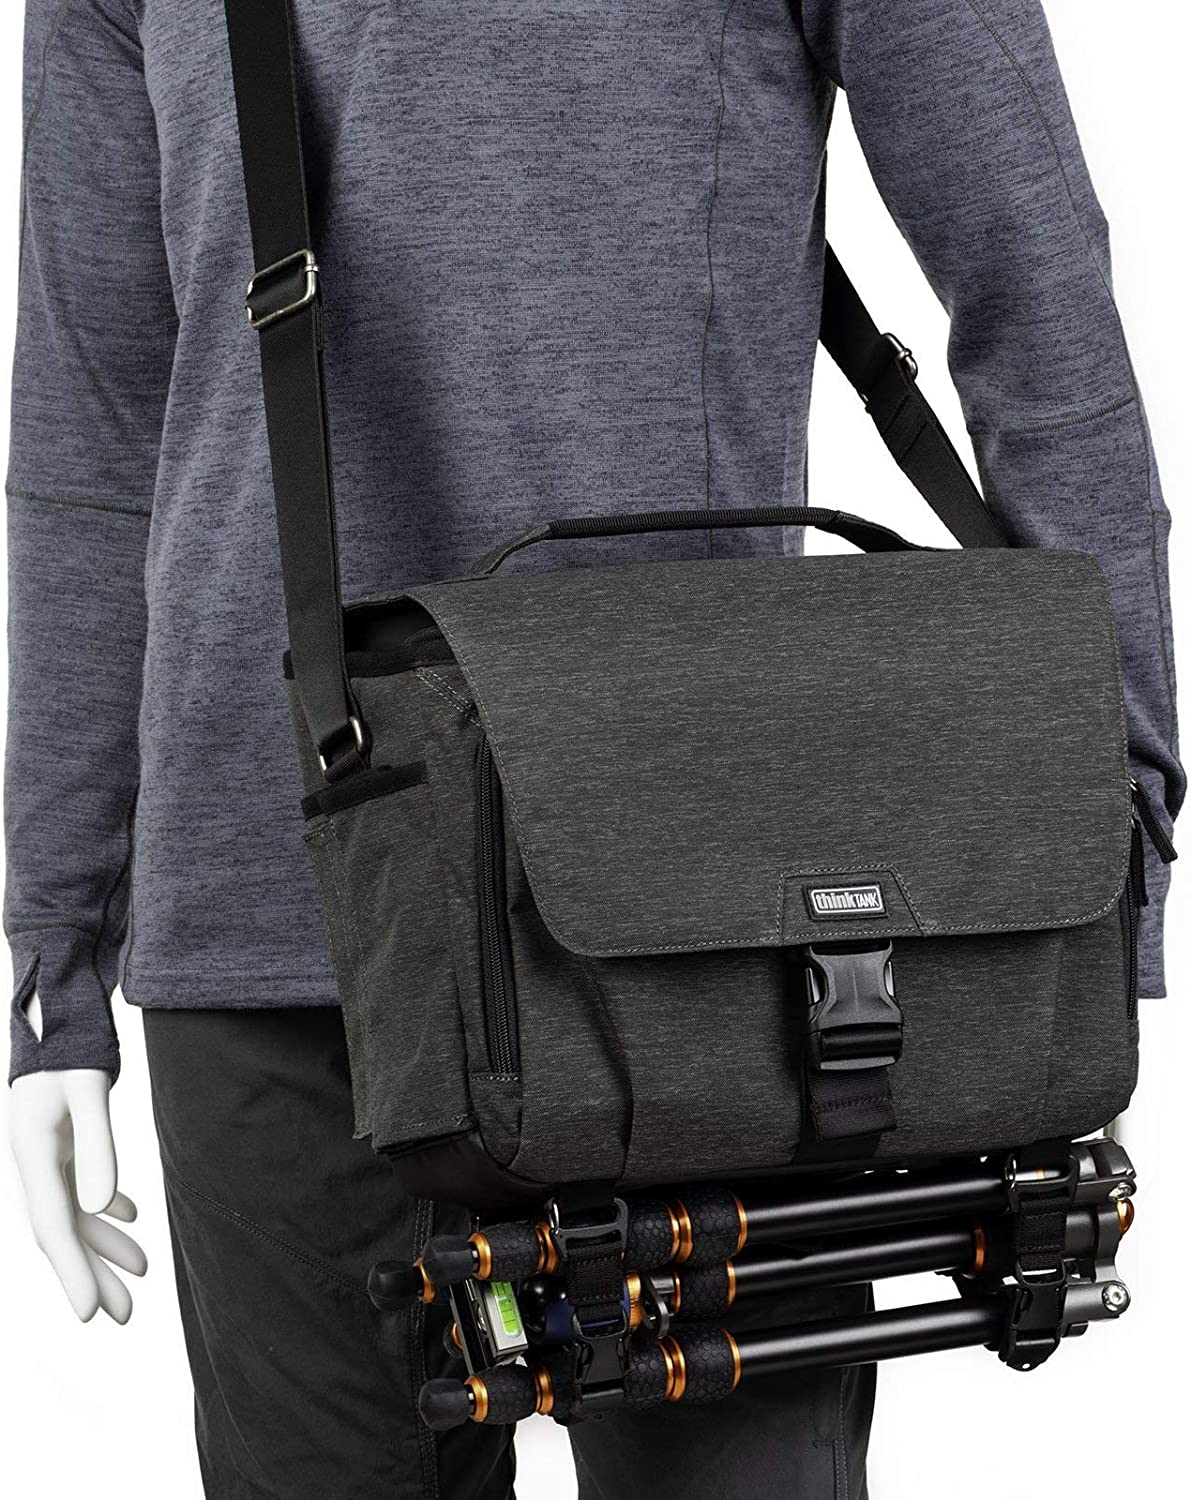 Think Tank Photo Vision 10 Camera Shoulder Messenger Bag for DSLR and Mirrorless Camera Systems (Graphite) 810kykgezgL